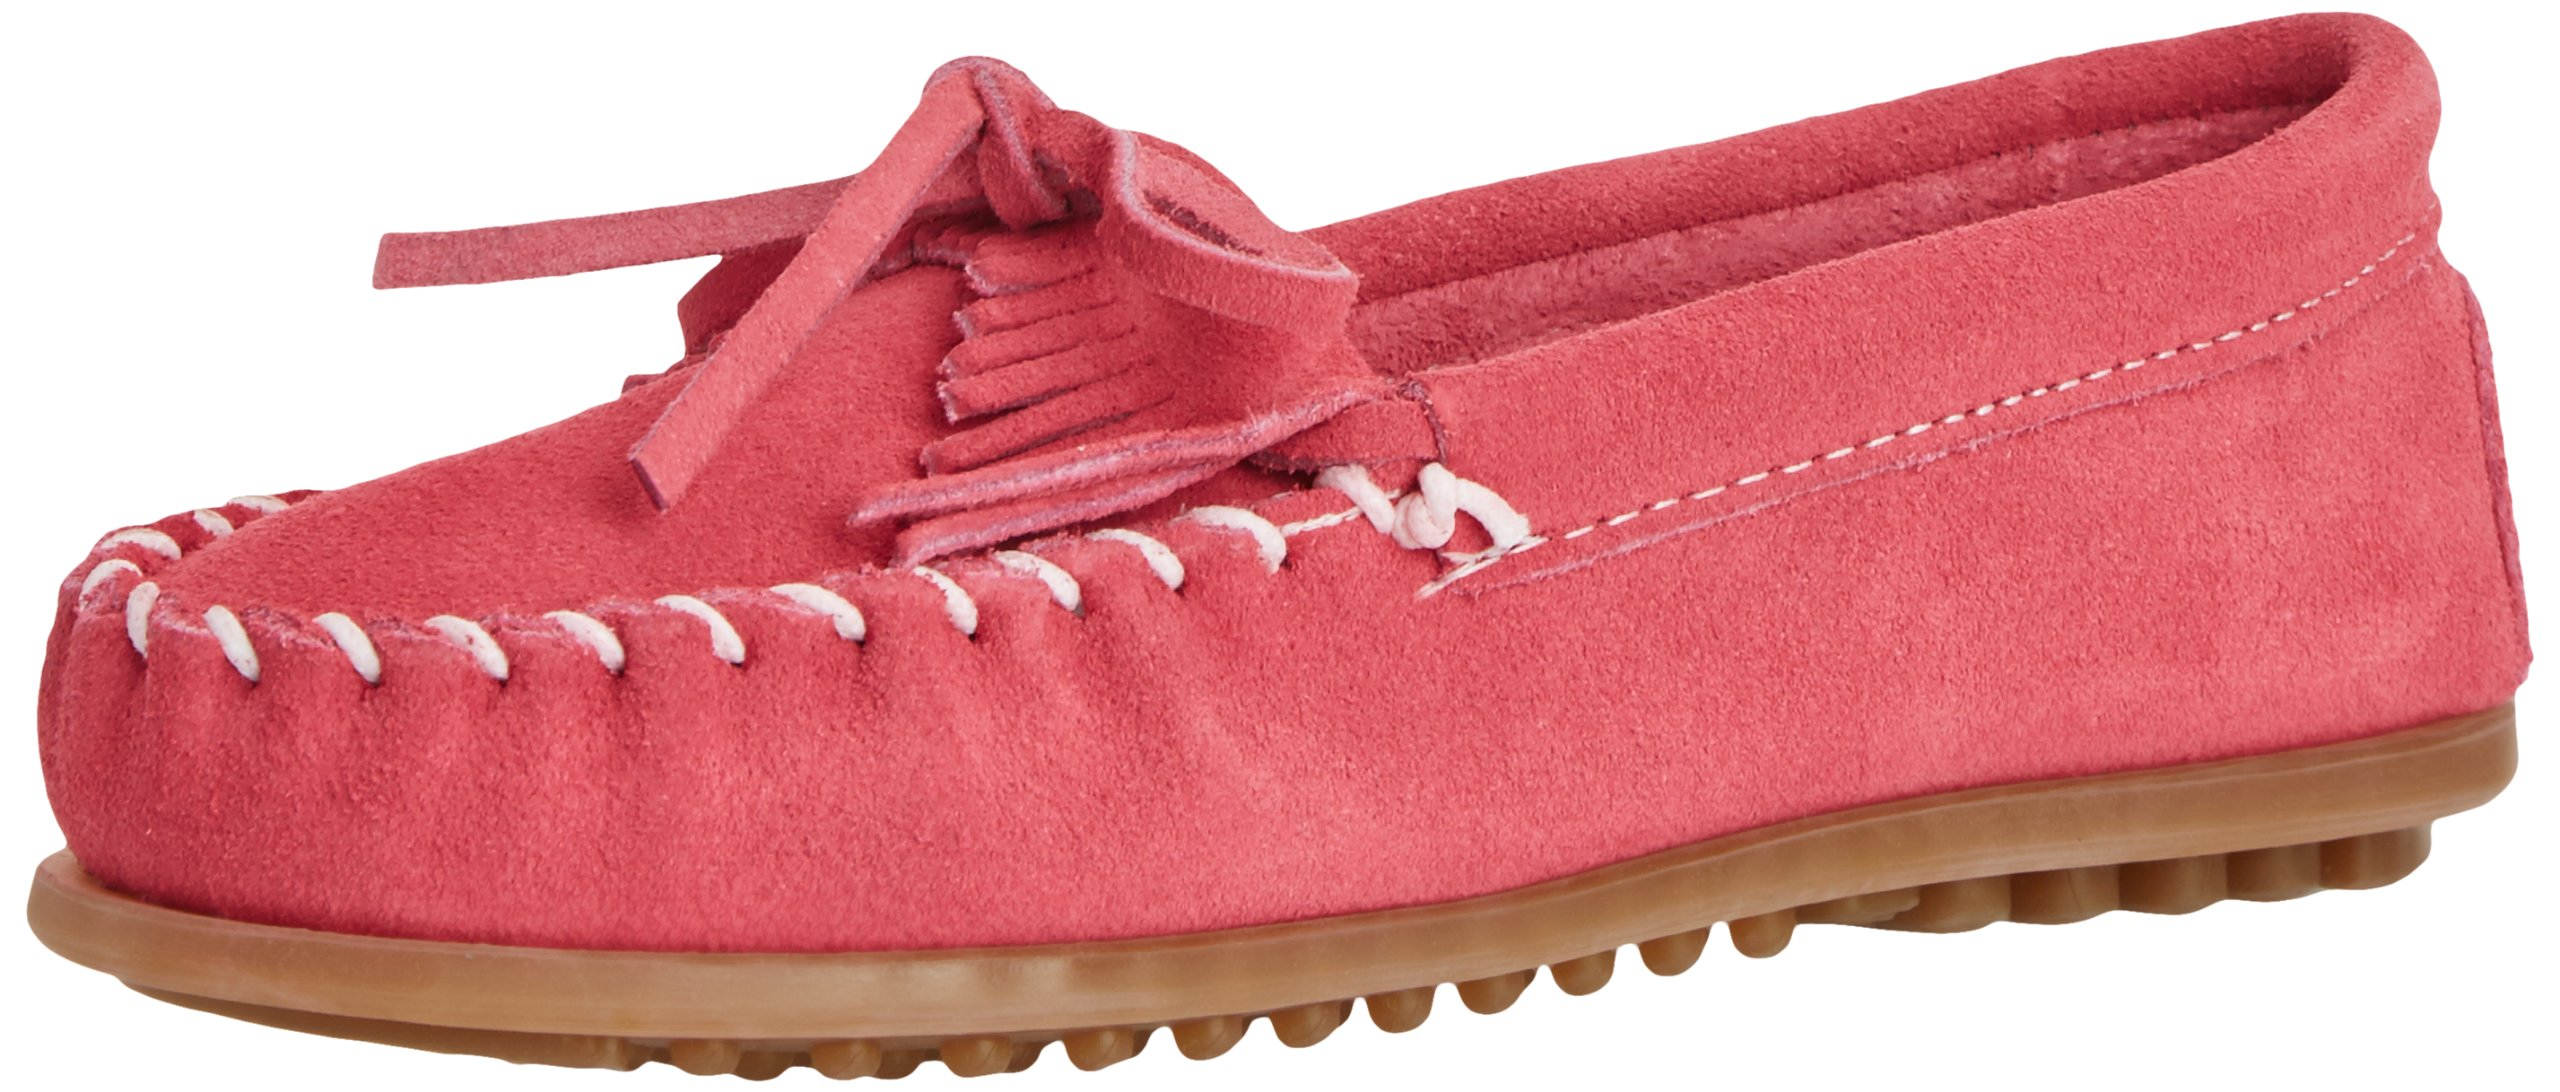 Minnetonka Kilty Moc (Toddler/Little Kid/Big Kid),Hot Pink,10 M US Toddler